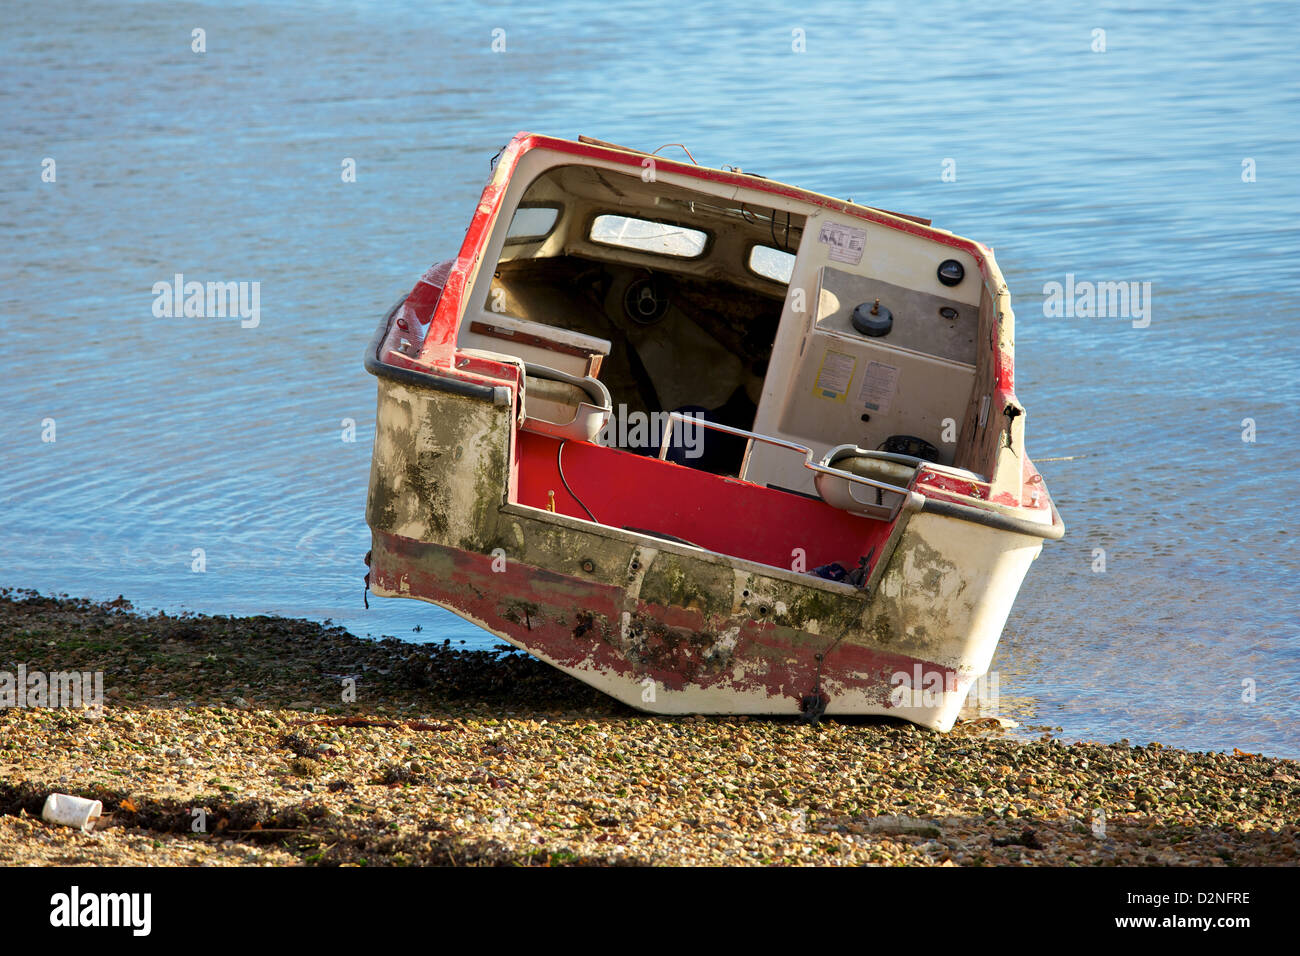 Derelict boat on the sea shore, UK - Stock Image